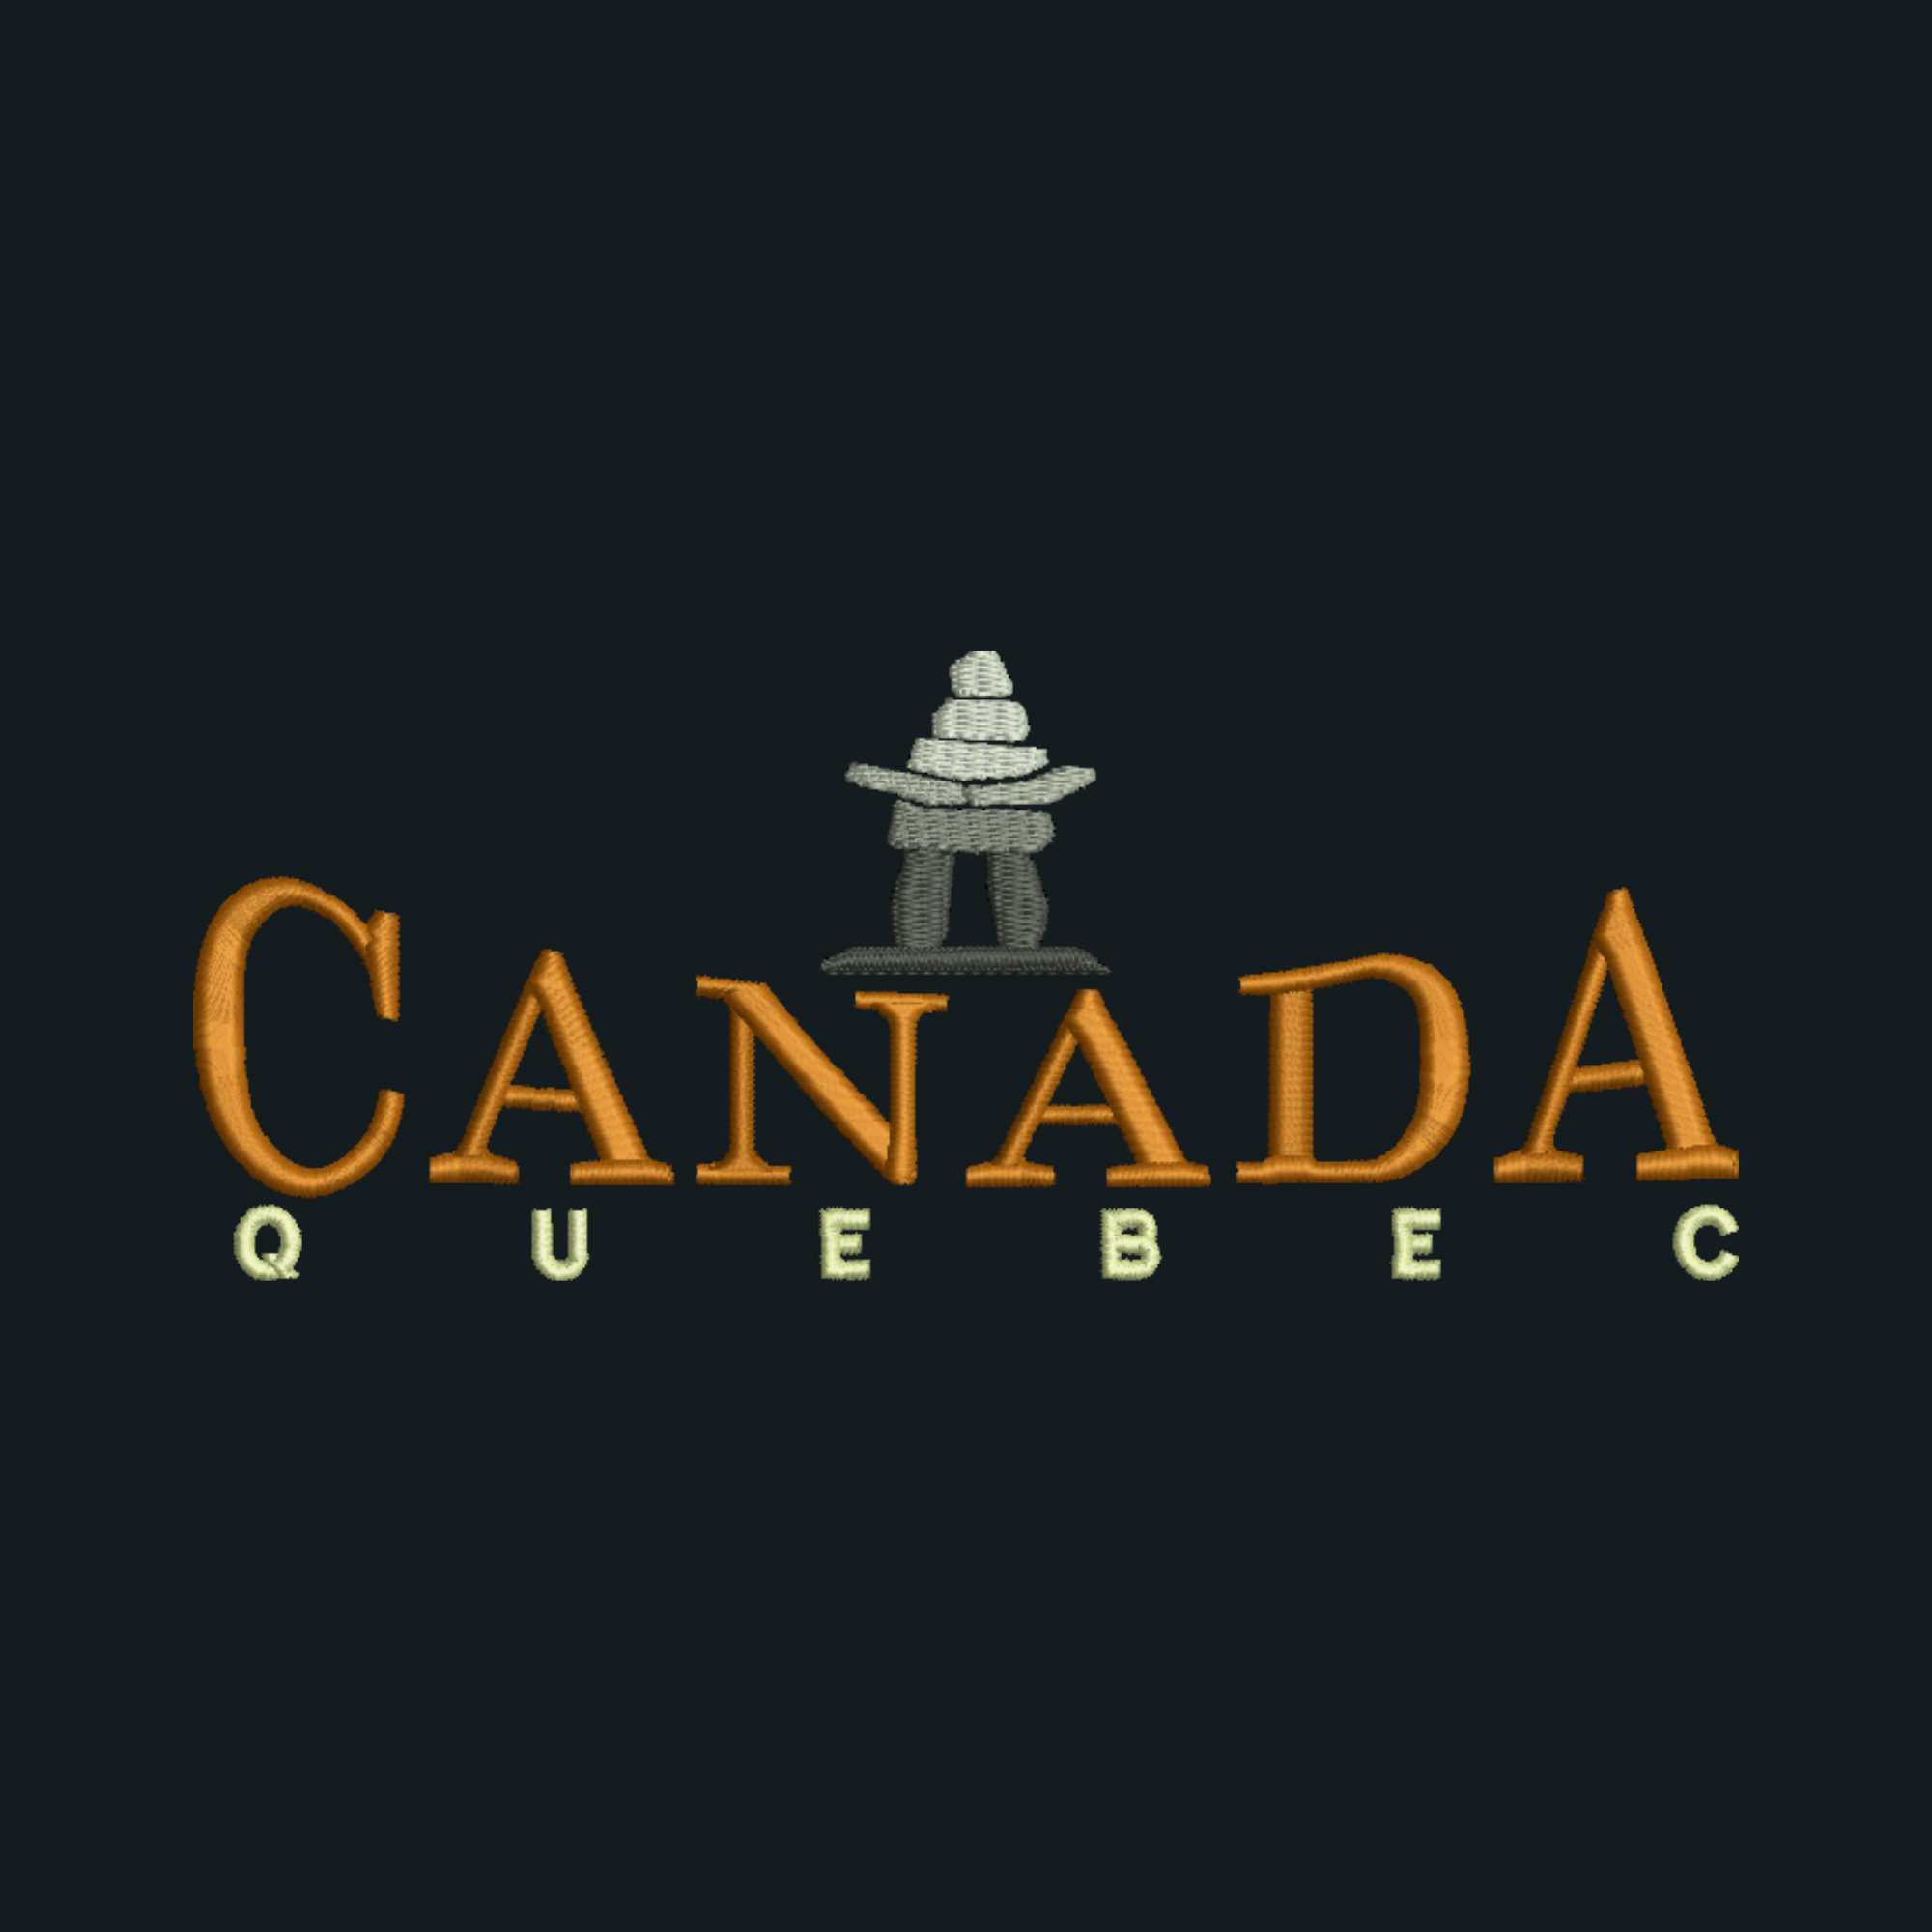 Canada with Inukshuk